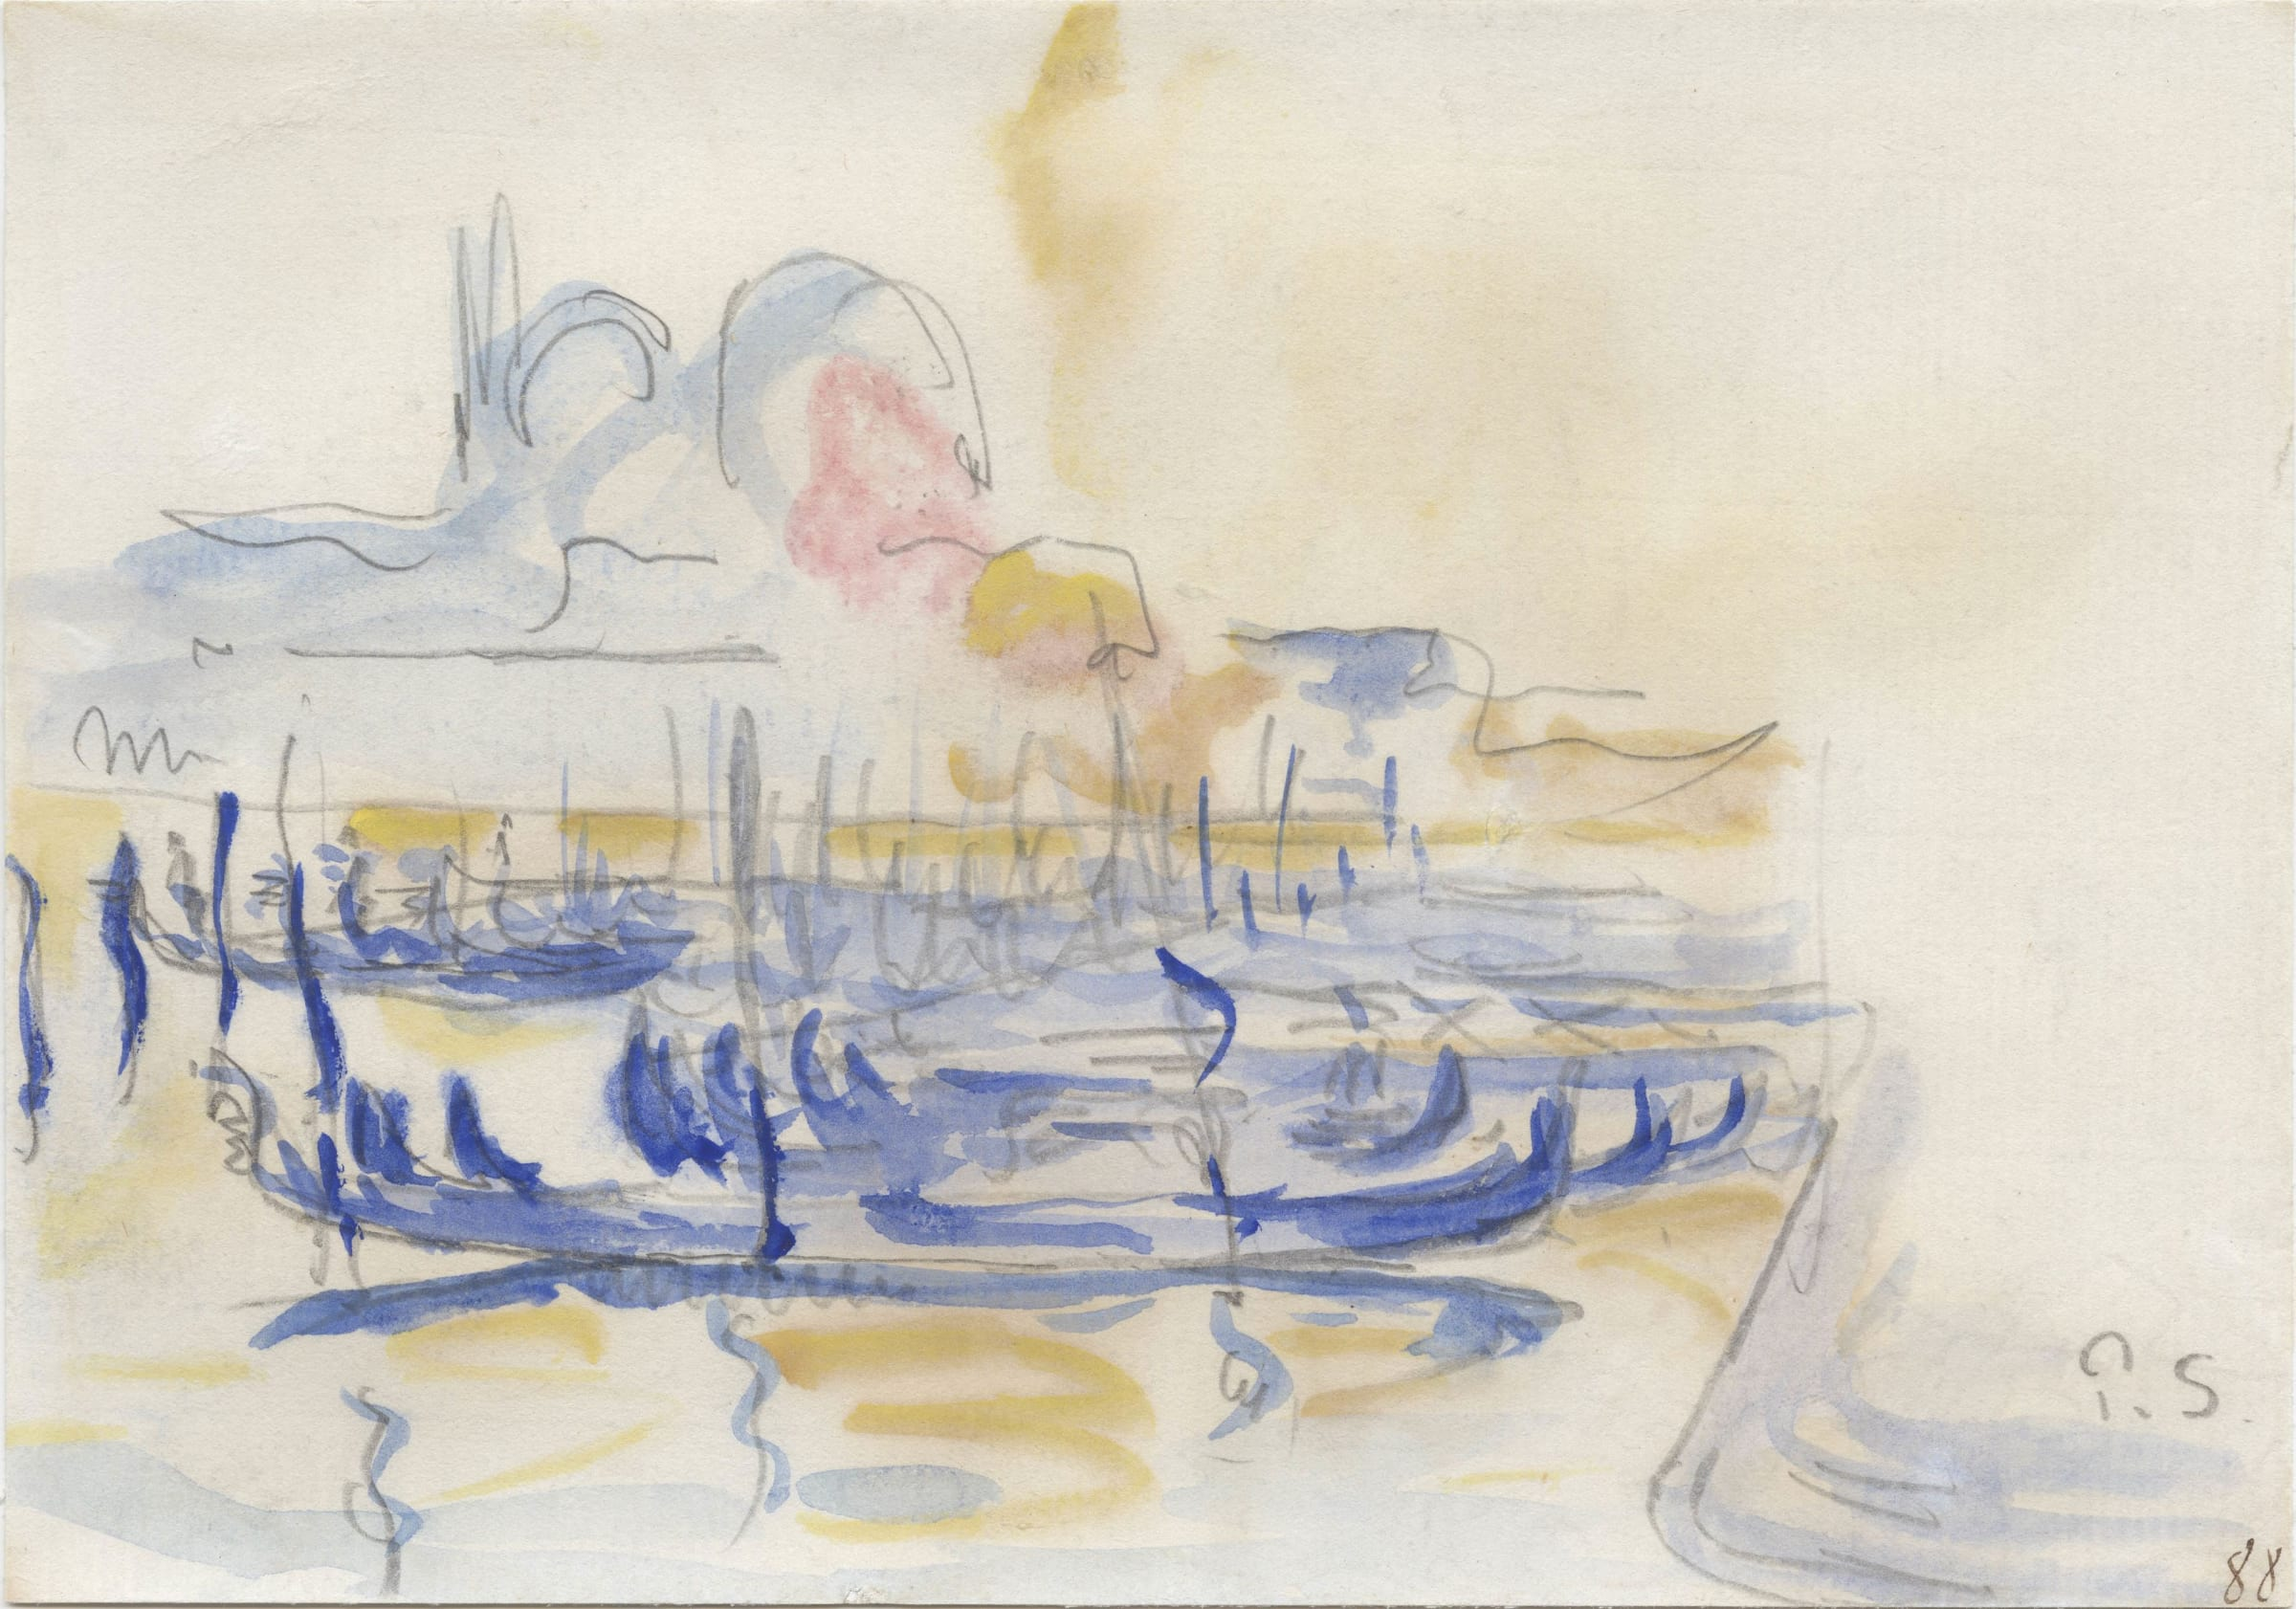 """<span class=""""link fancybox-details-link""""><a href=""""/artists/75-paul-signac/works/9421-paul-signac-vue-de-venise-1888/"""">View Detail Page</a></span><div class=""""artist""""><span class=""""artist""""><strong>Paul Signac</strong></span></div><div class=""""title""""><em>Vue de Venise</em>, 1888</div><div class=""""signed_and_dated"""">Signed and dated lower right P.S 88</div><div class=""""medium"""">Watercolour on paper</div><div class=""""dimensions"""">14 x 20 cm<br /> 5 ½ x 7 7/8 inches</div>"""